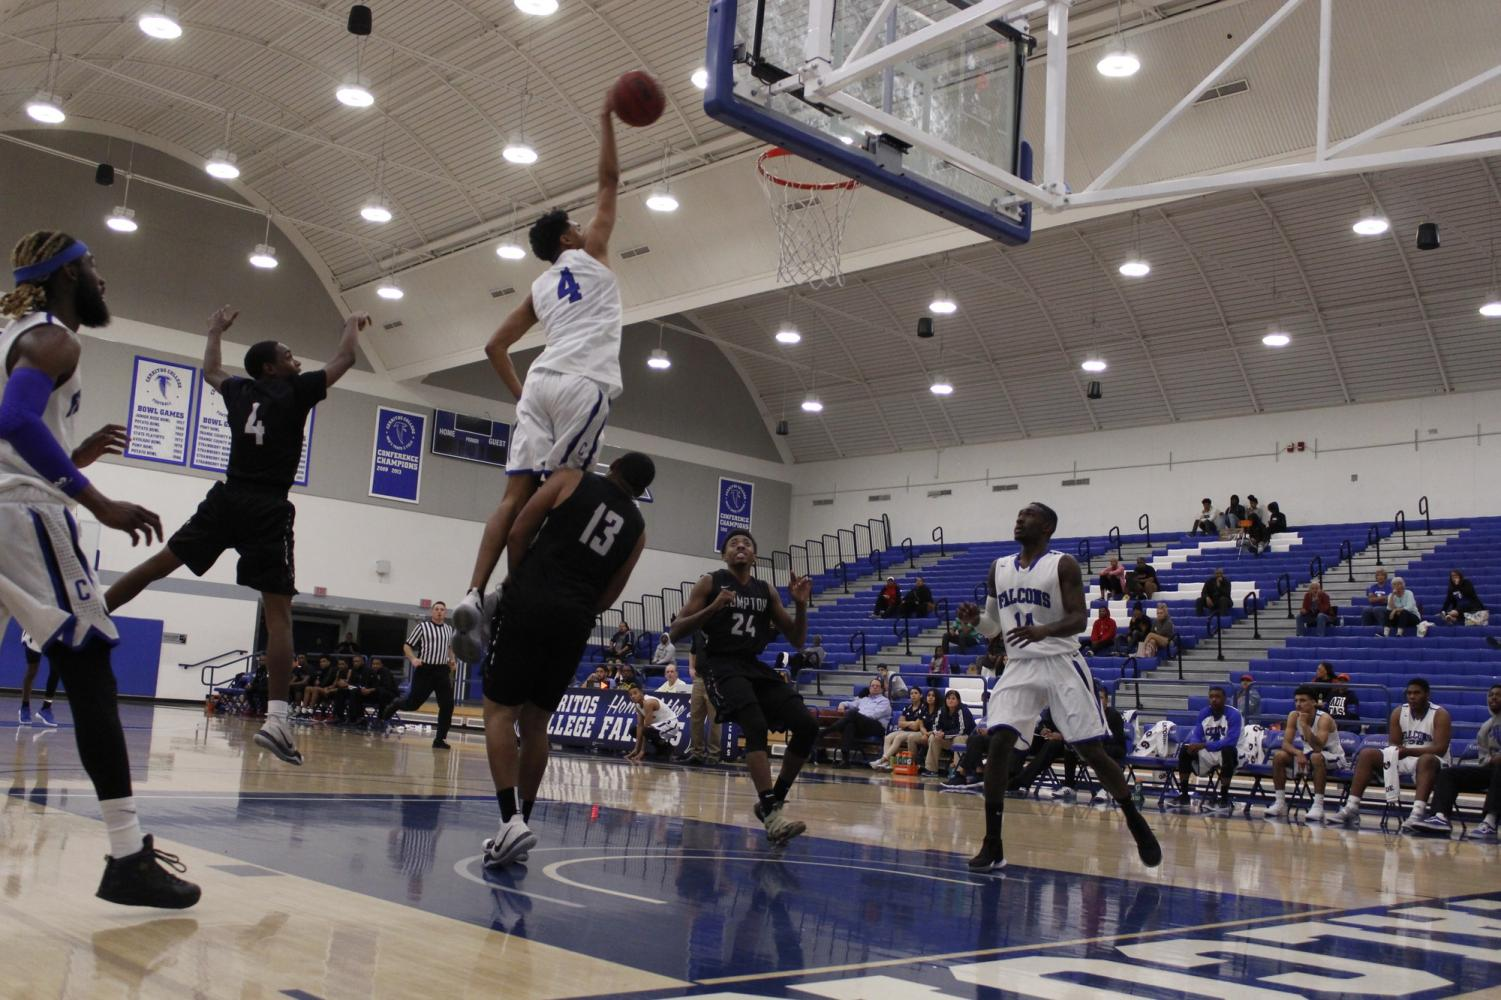 Men's basketball acquires eighth win in a row defeating Compton College